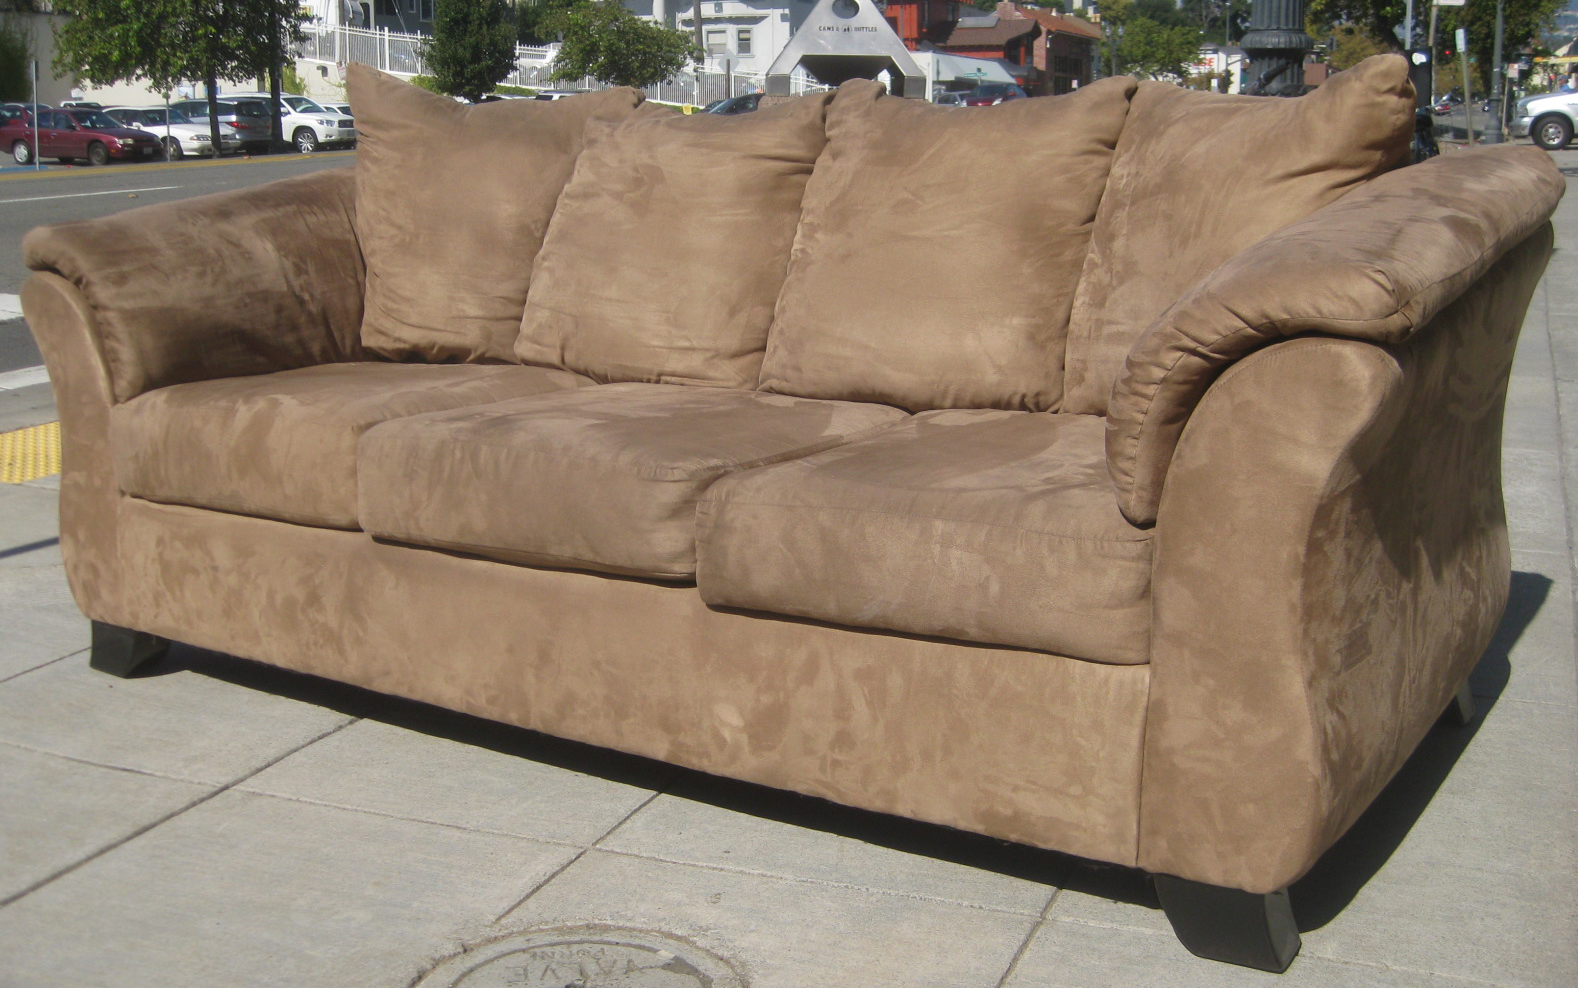 How do u clean a suede couch home improvement for Suede furniture